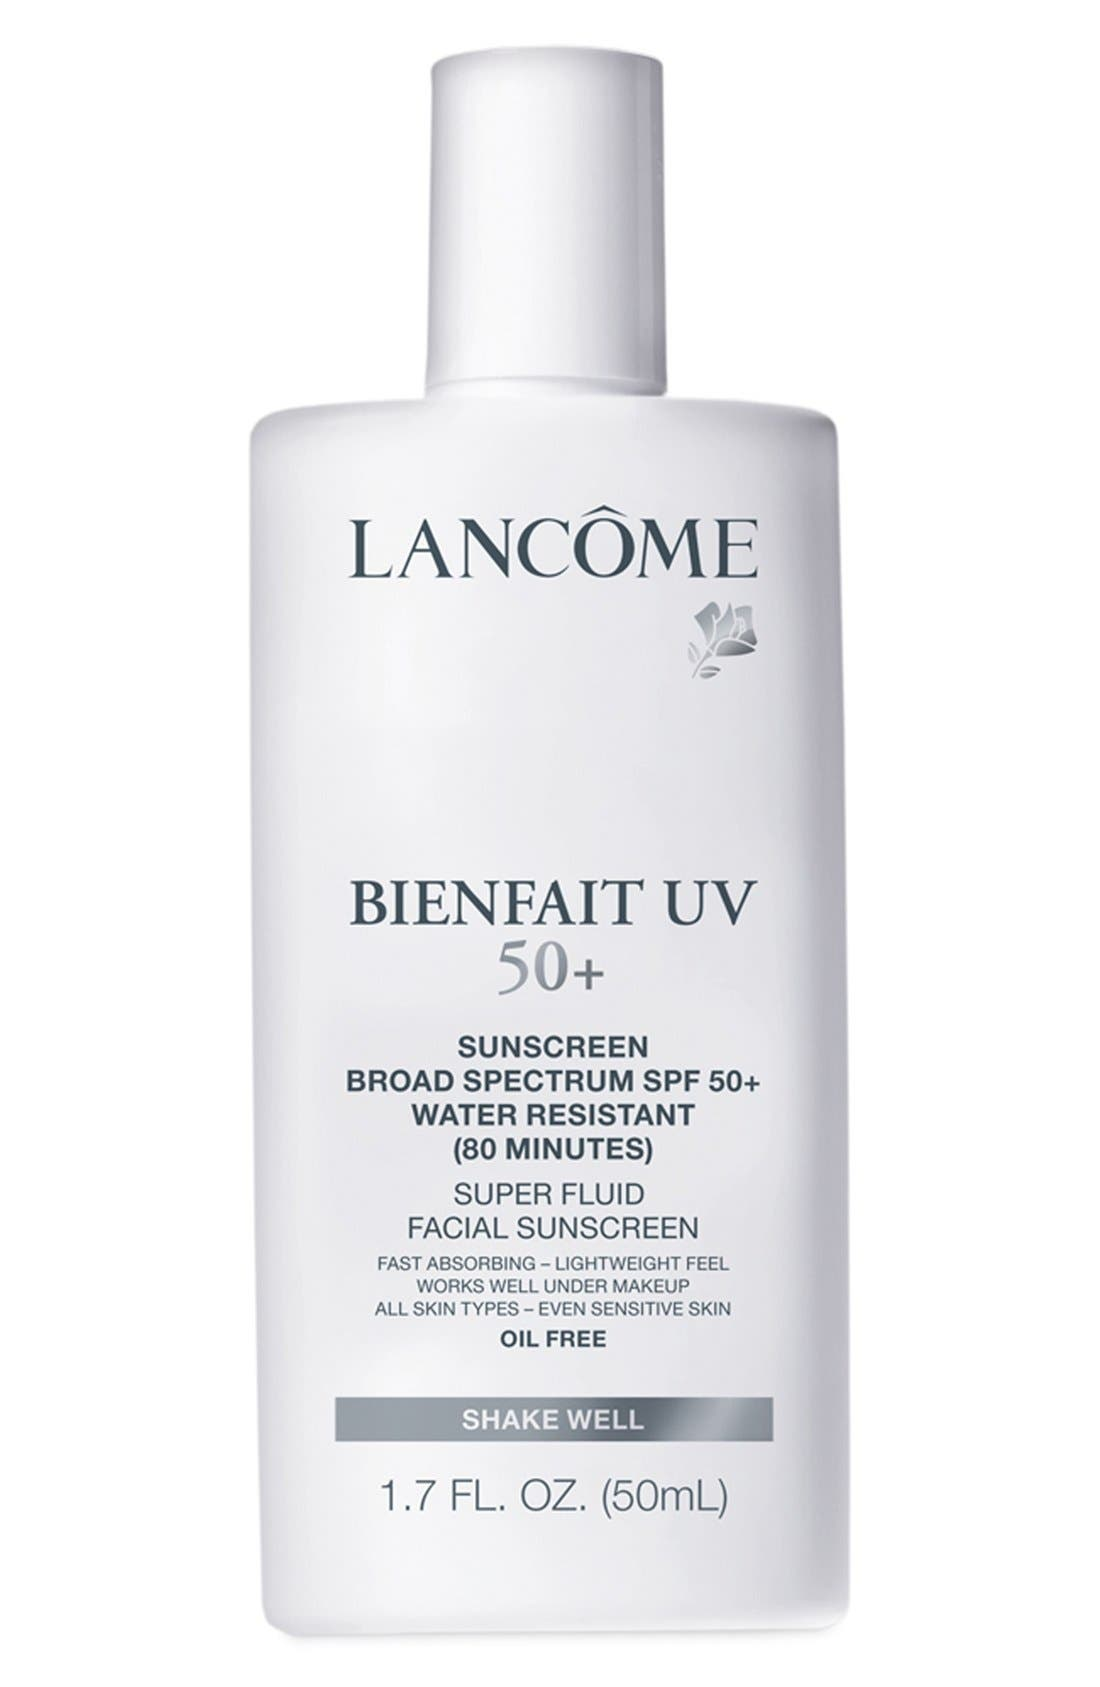 Bienfait UV Super Fluid Facial Sunscreen SPF 50+, Main, color, 000